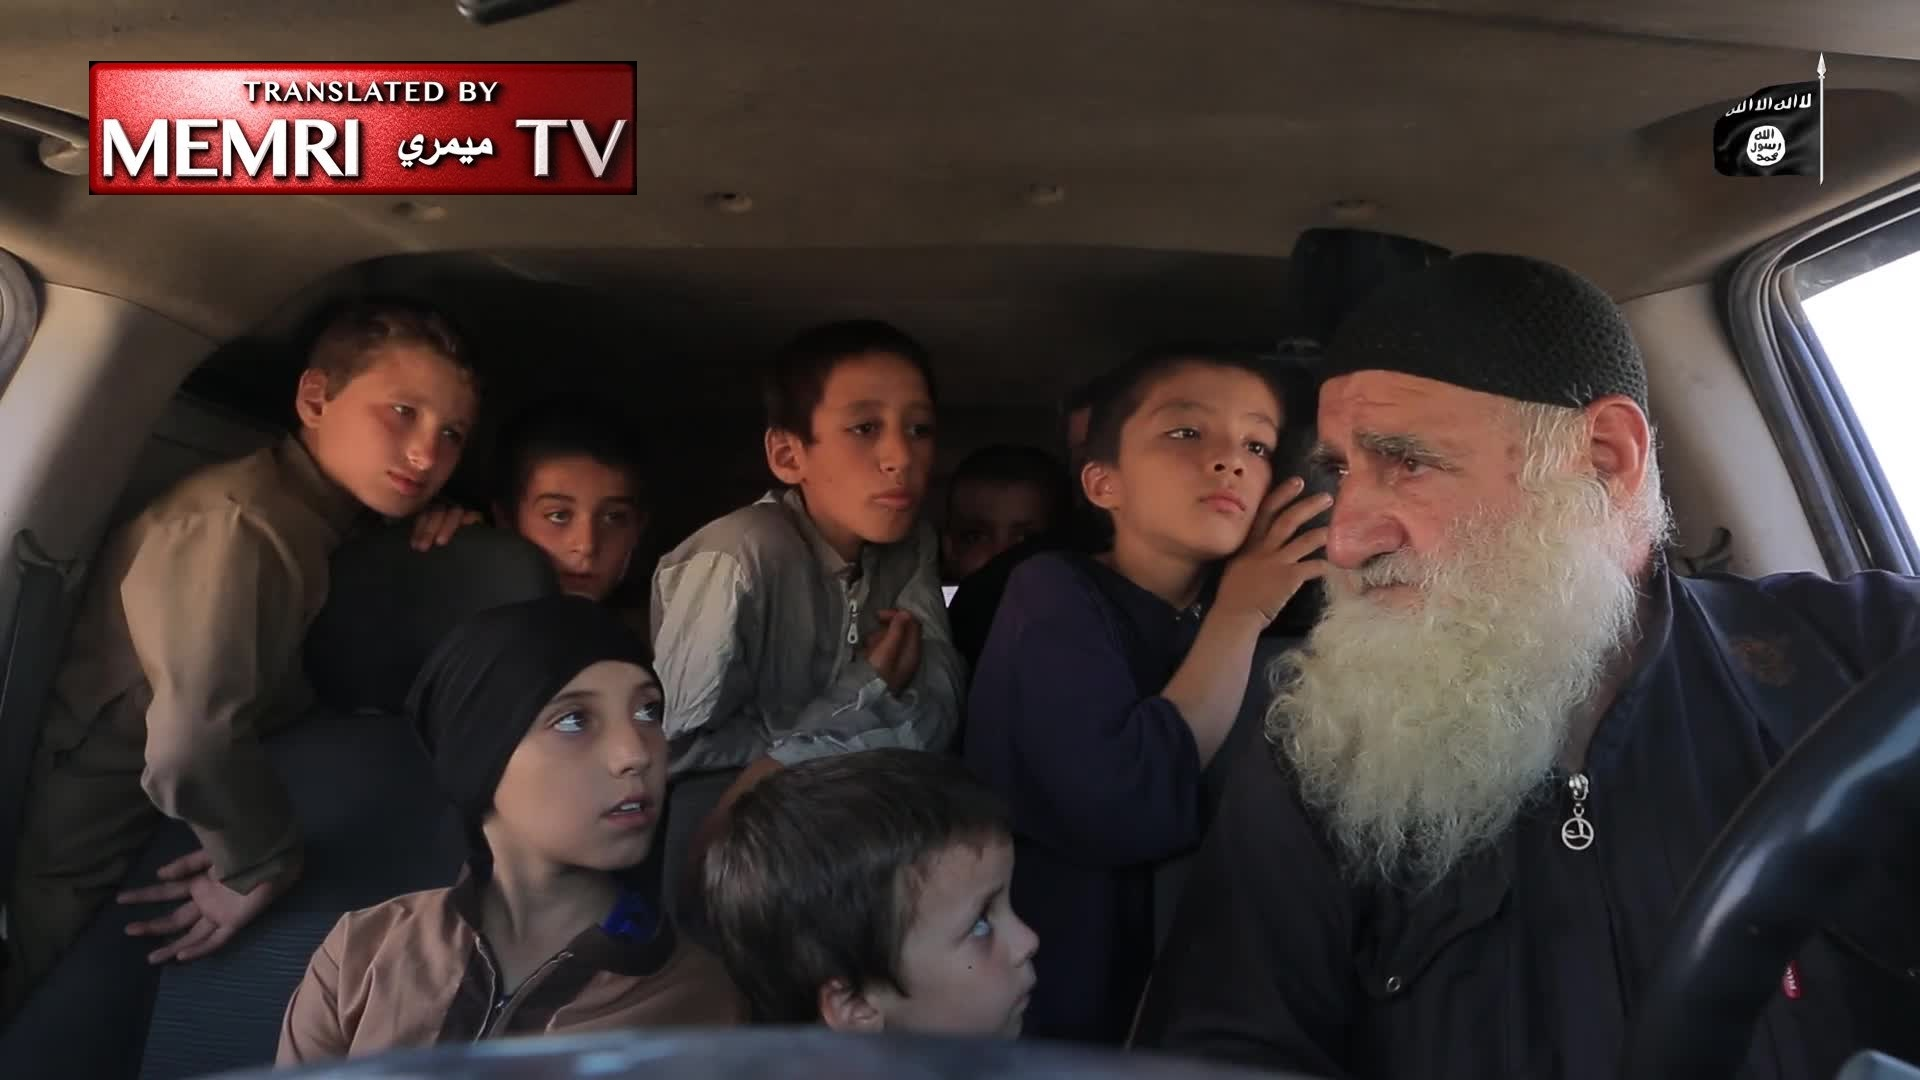 80-Year-Old ISIS Activist Mentors Young Orphaned Sons of Foreign Fighters, Calls for Attacks in the U.S., Russia, China